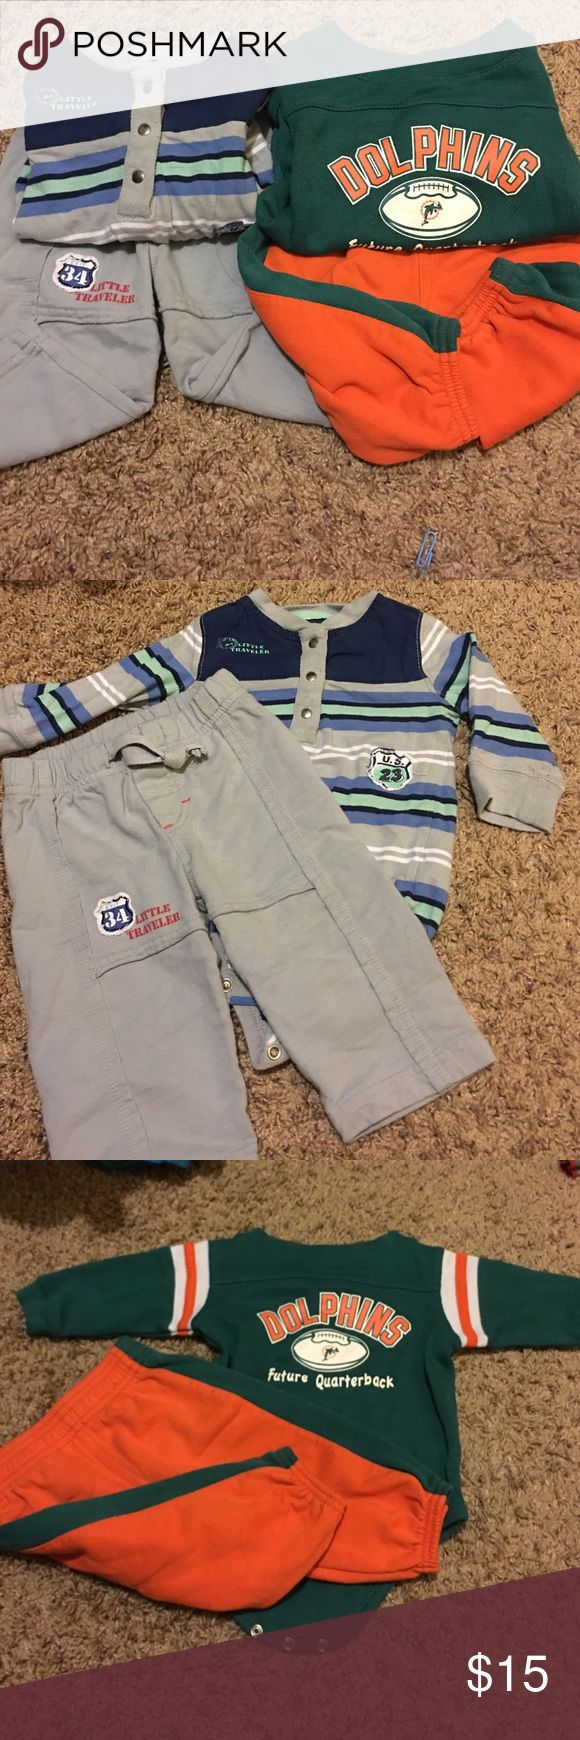 Little traveler/Miami Dolphins future quarter back Two outfits! Barely used Nfl Matching Sets